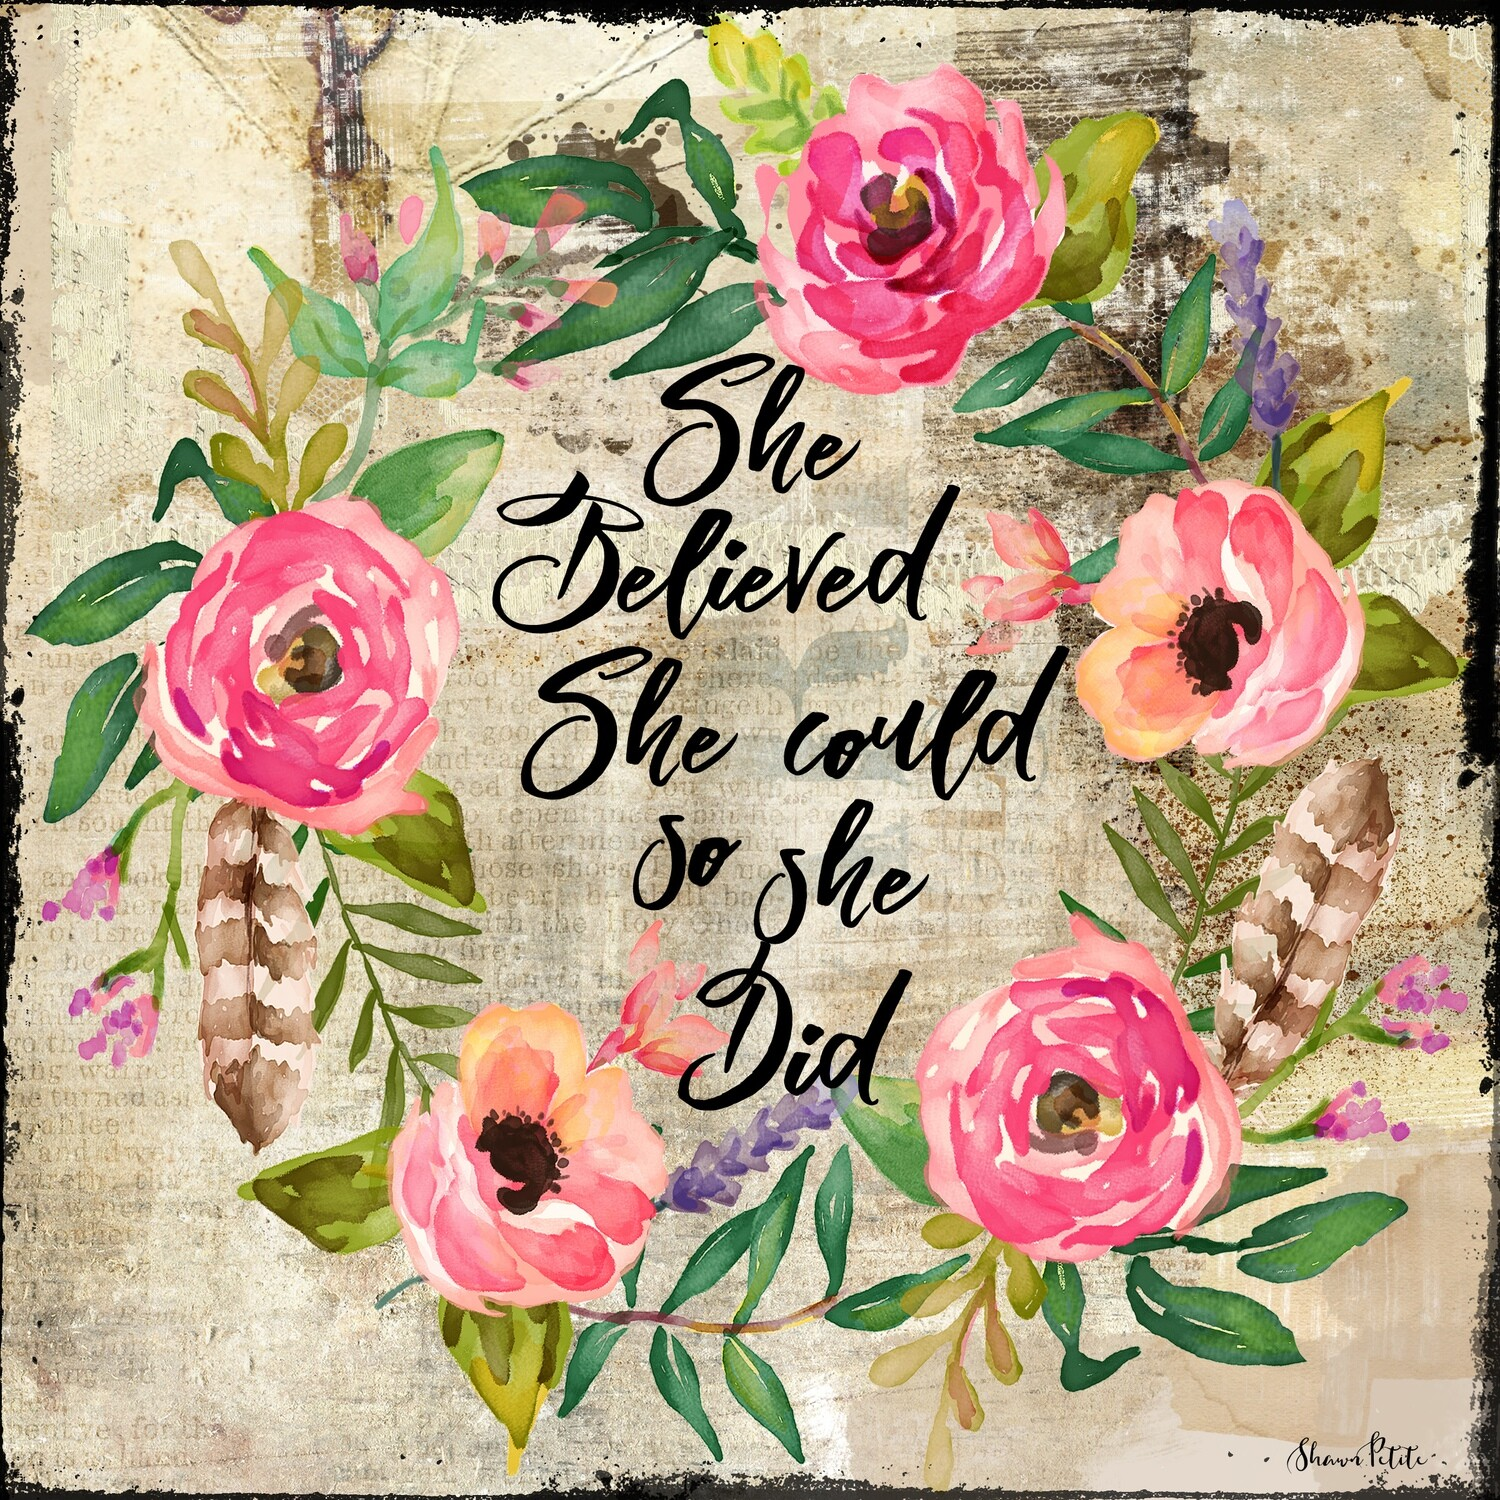 """She believed she could so she did"" flower Wreath Print on Wood 6x6 Overstock"